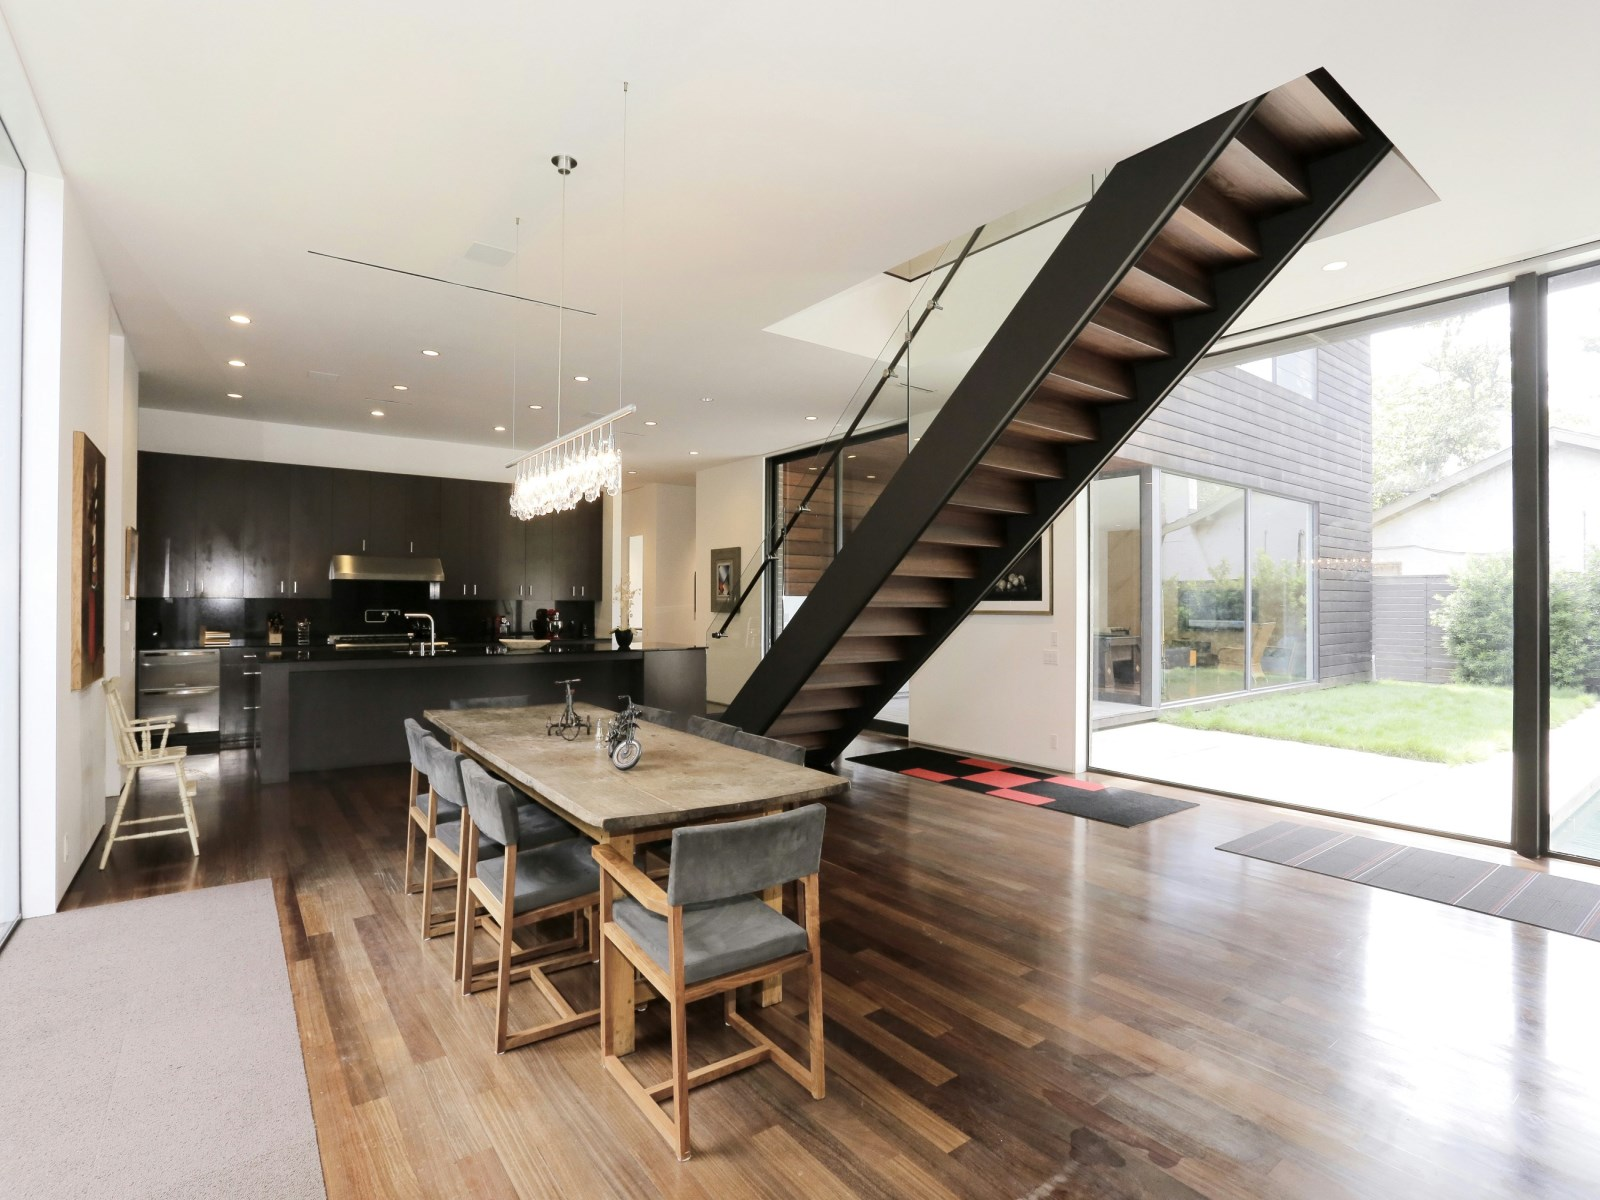 Staircase Inspiration - A home with formidable architecture and a light interior